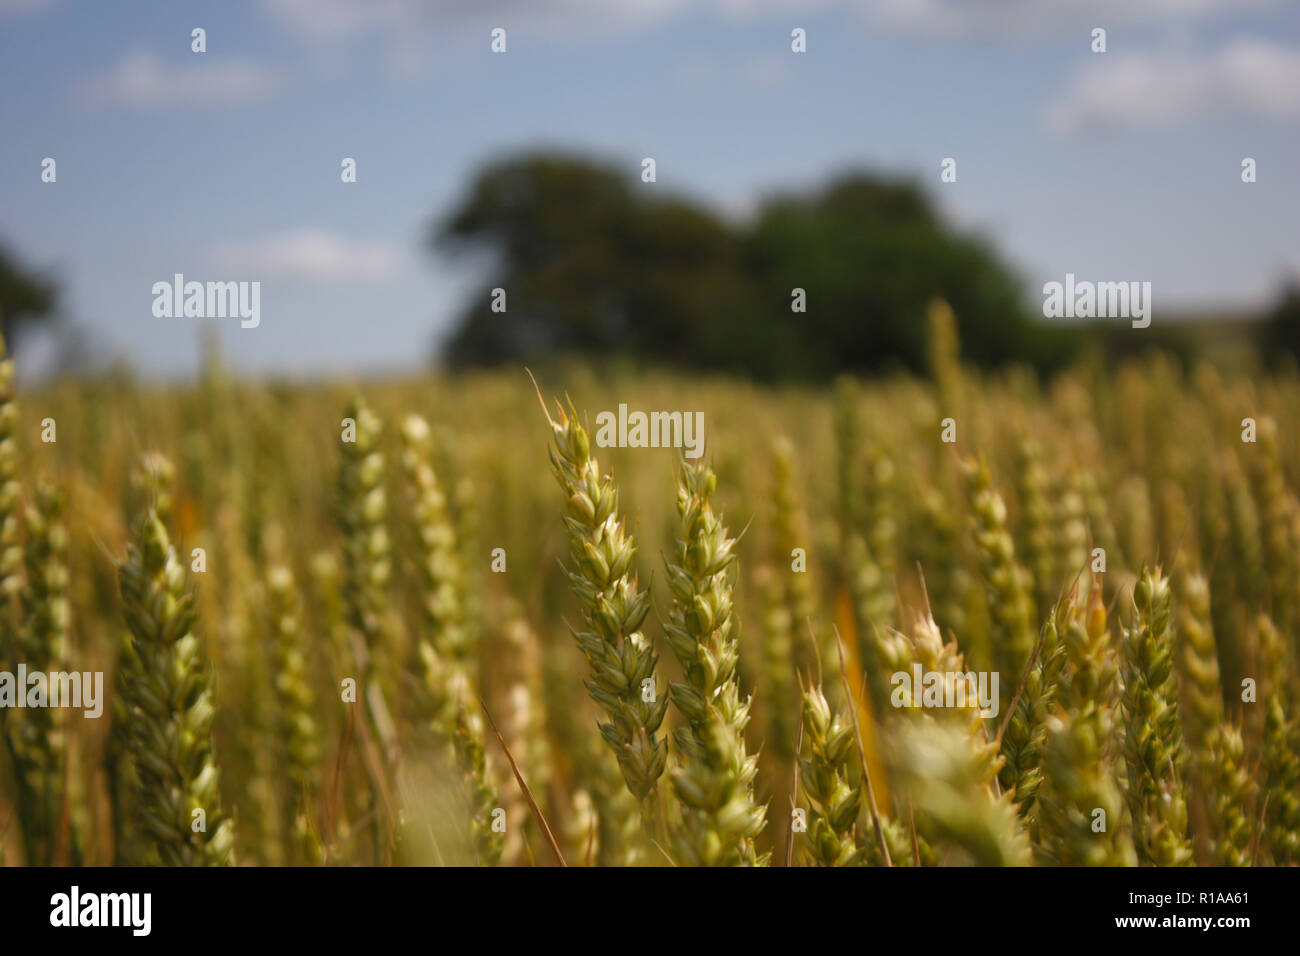 Wheat fields in July in Southern England - Stock Image